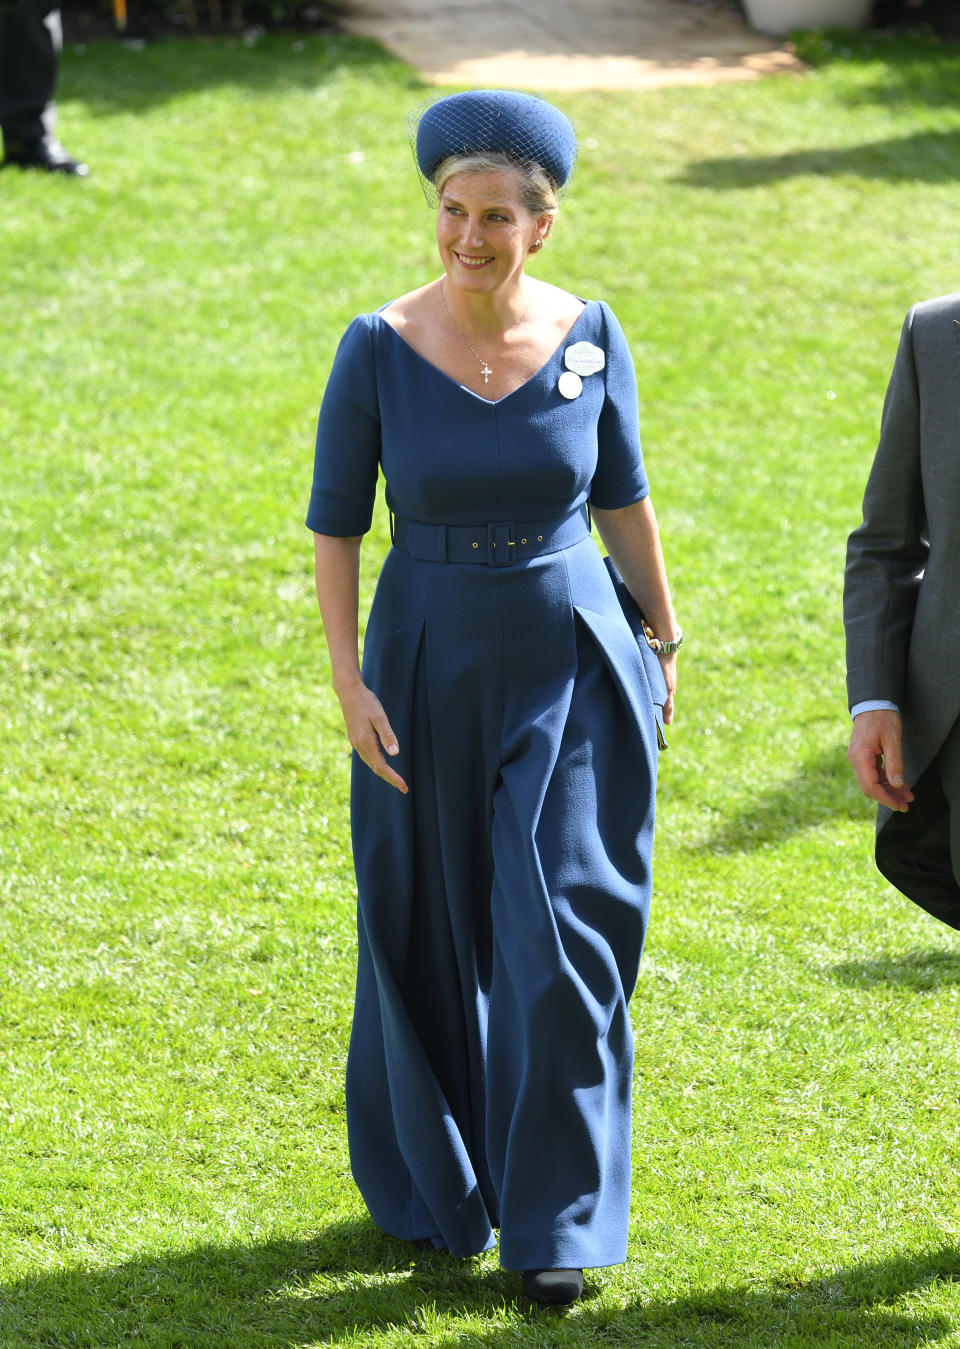 """Sophie, Countess of Wessex wore a bespoke belted navy jumpsuit by Emilia Wickstead - <a href=""""https://fave.co/2ZyI2Ib"""" rel=""""nofollow noopener"""" target=""""_blank"""" data-ylk=""""slk:available in red here"""" class=""""link rapid-noclick-resp"""">available in red here</a> with a <a href=""""https://fave.co/2ZFVaLD"""" rel=""""nofollow noopener"""" target=""""_blank"""" data-ylk=""""slk:Jane Taylor"""" class=""""link rapid-noclick-resp"""">Jane Taylor</a> veiled hat. <em>[Photo: PA]</em>"""